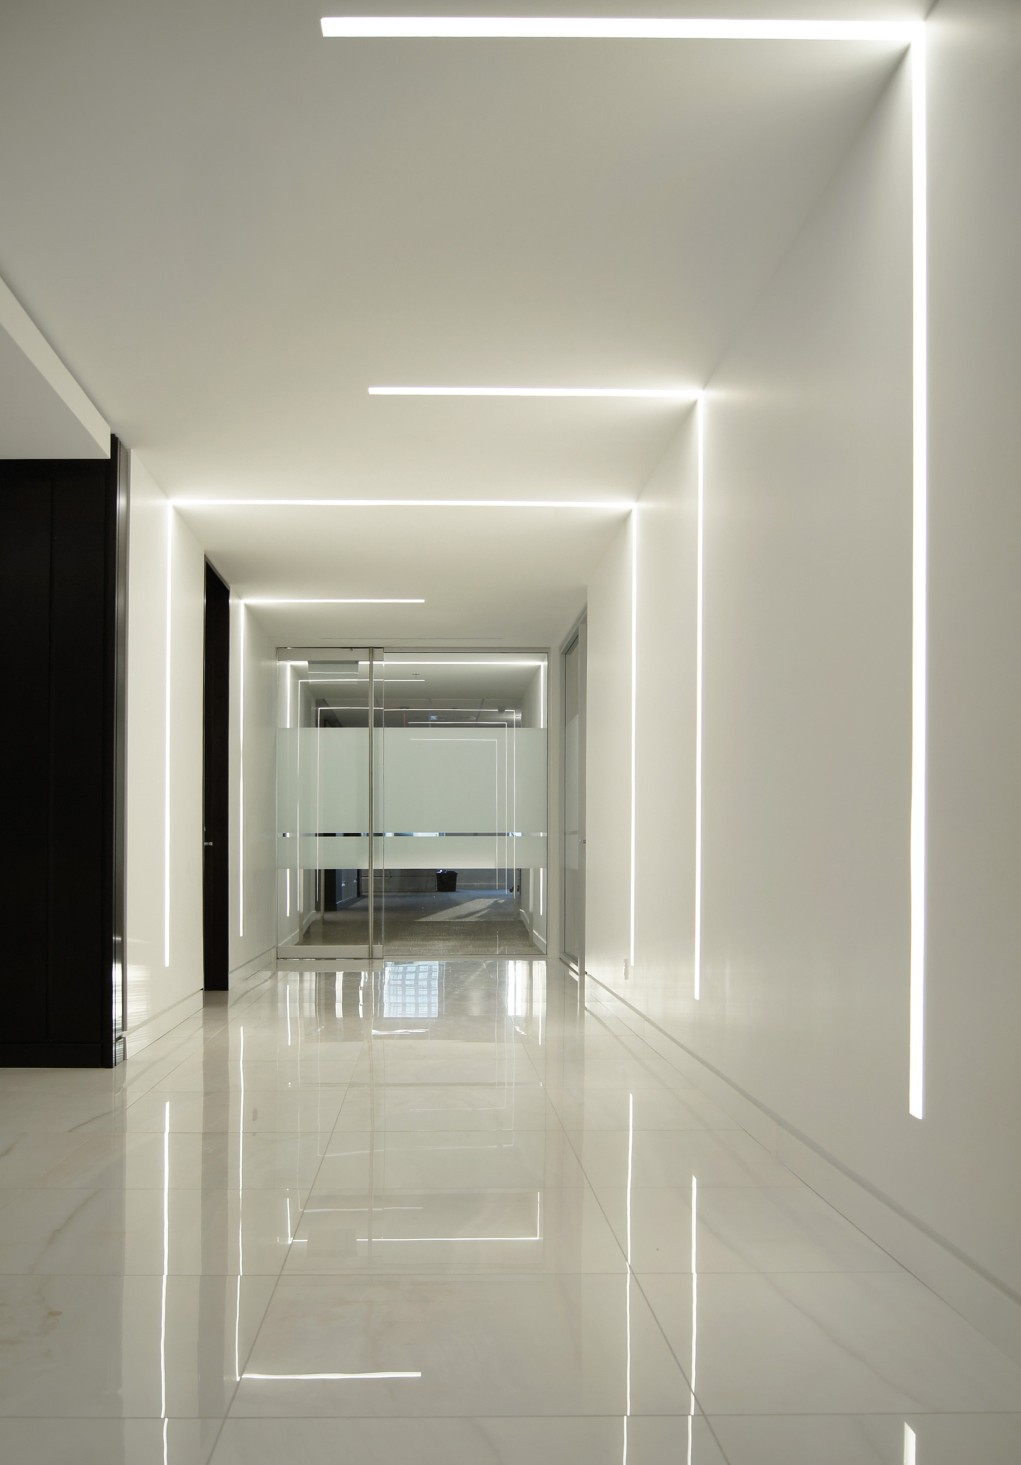 In corridors, trimless Lumenline Recessed and Lumenline Recessed TBAR luminaires start from the ceilings and extend on the walls.